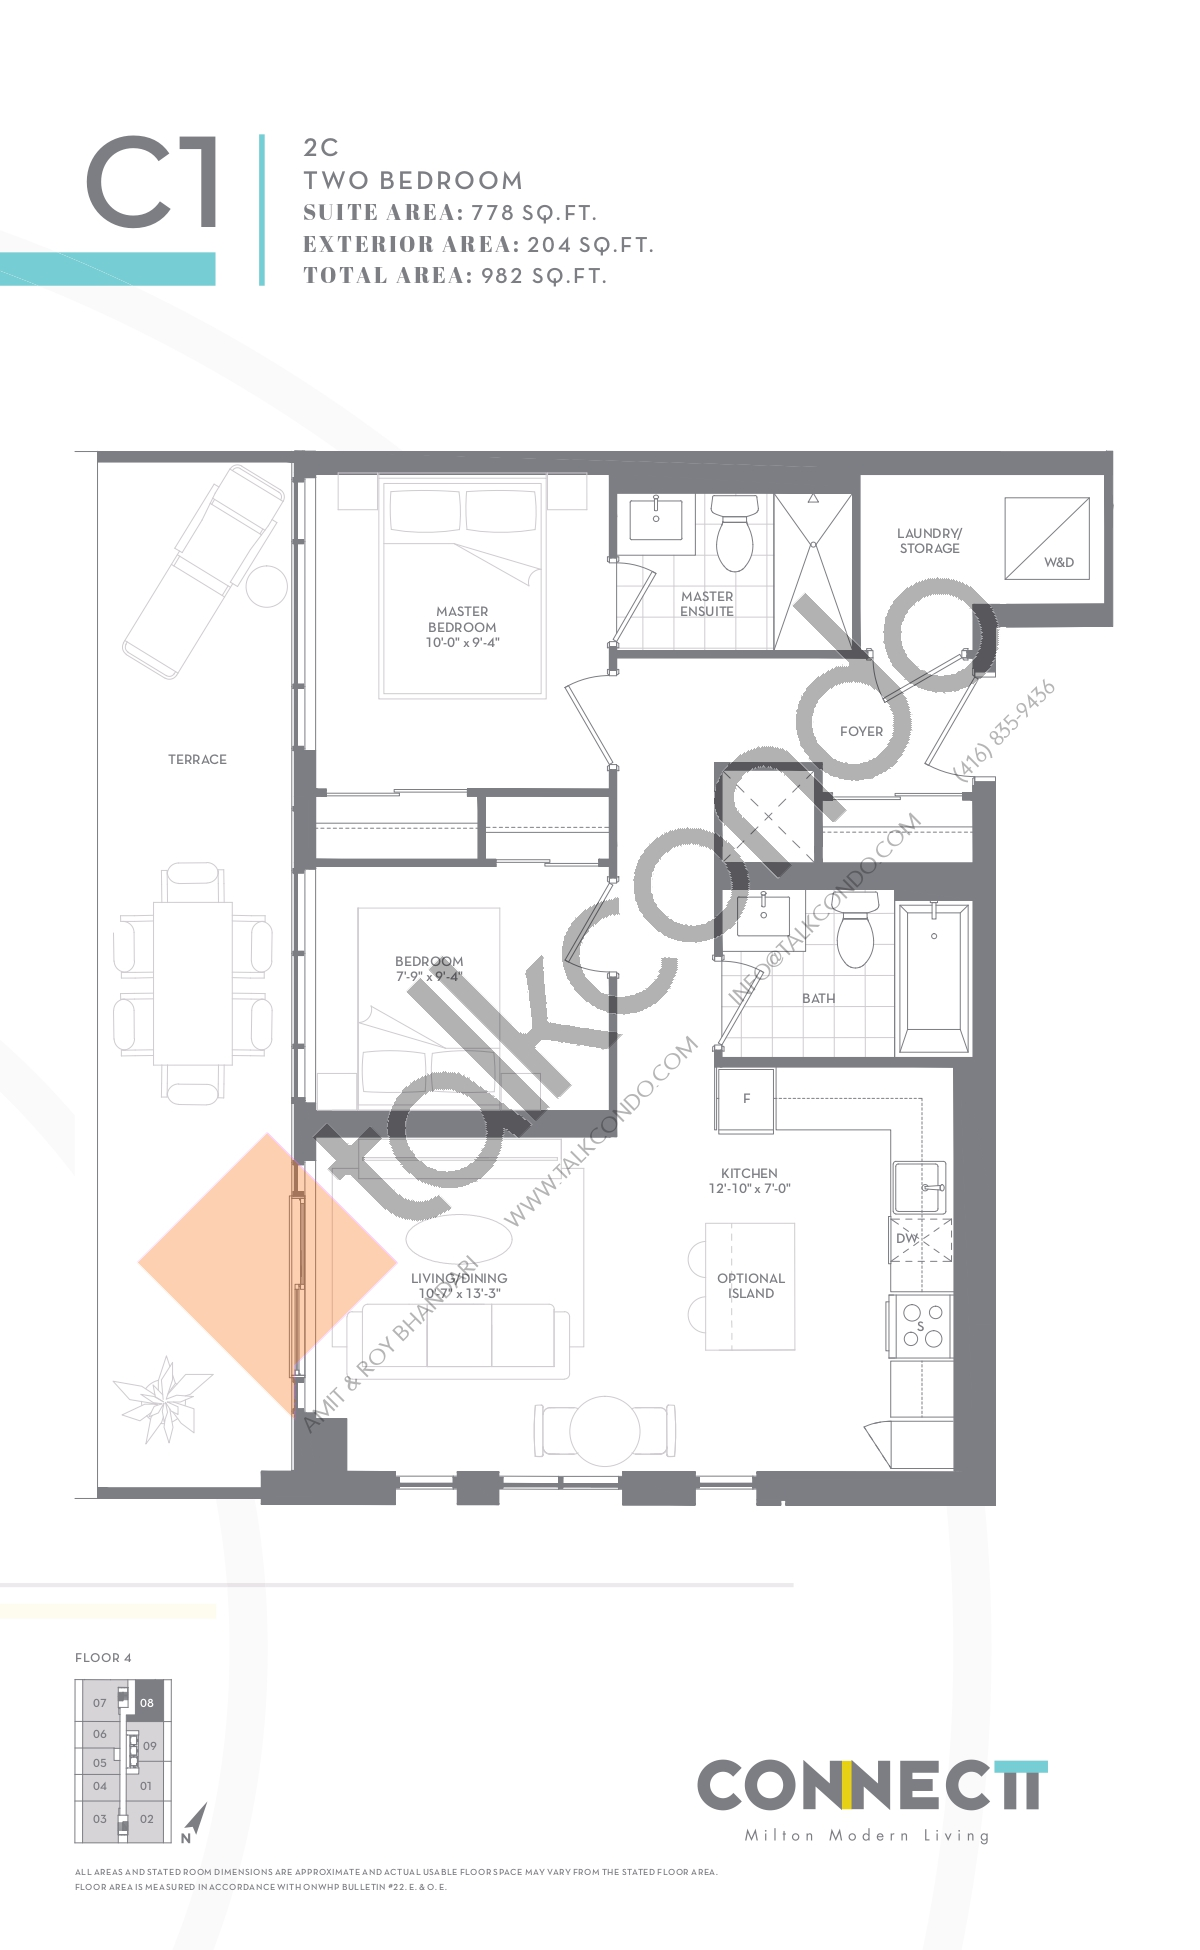 2C Floor Plan at Connectt Urban Community Condos - 778 sq.ft